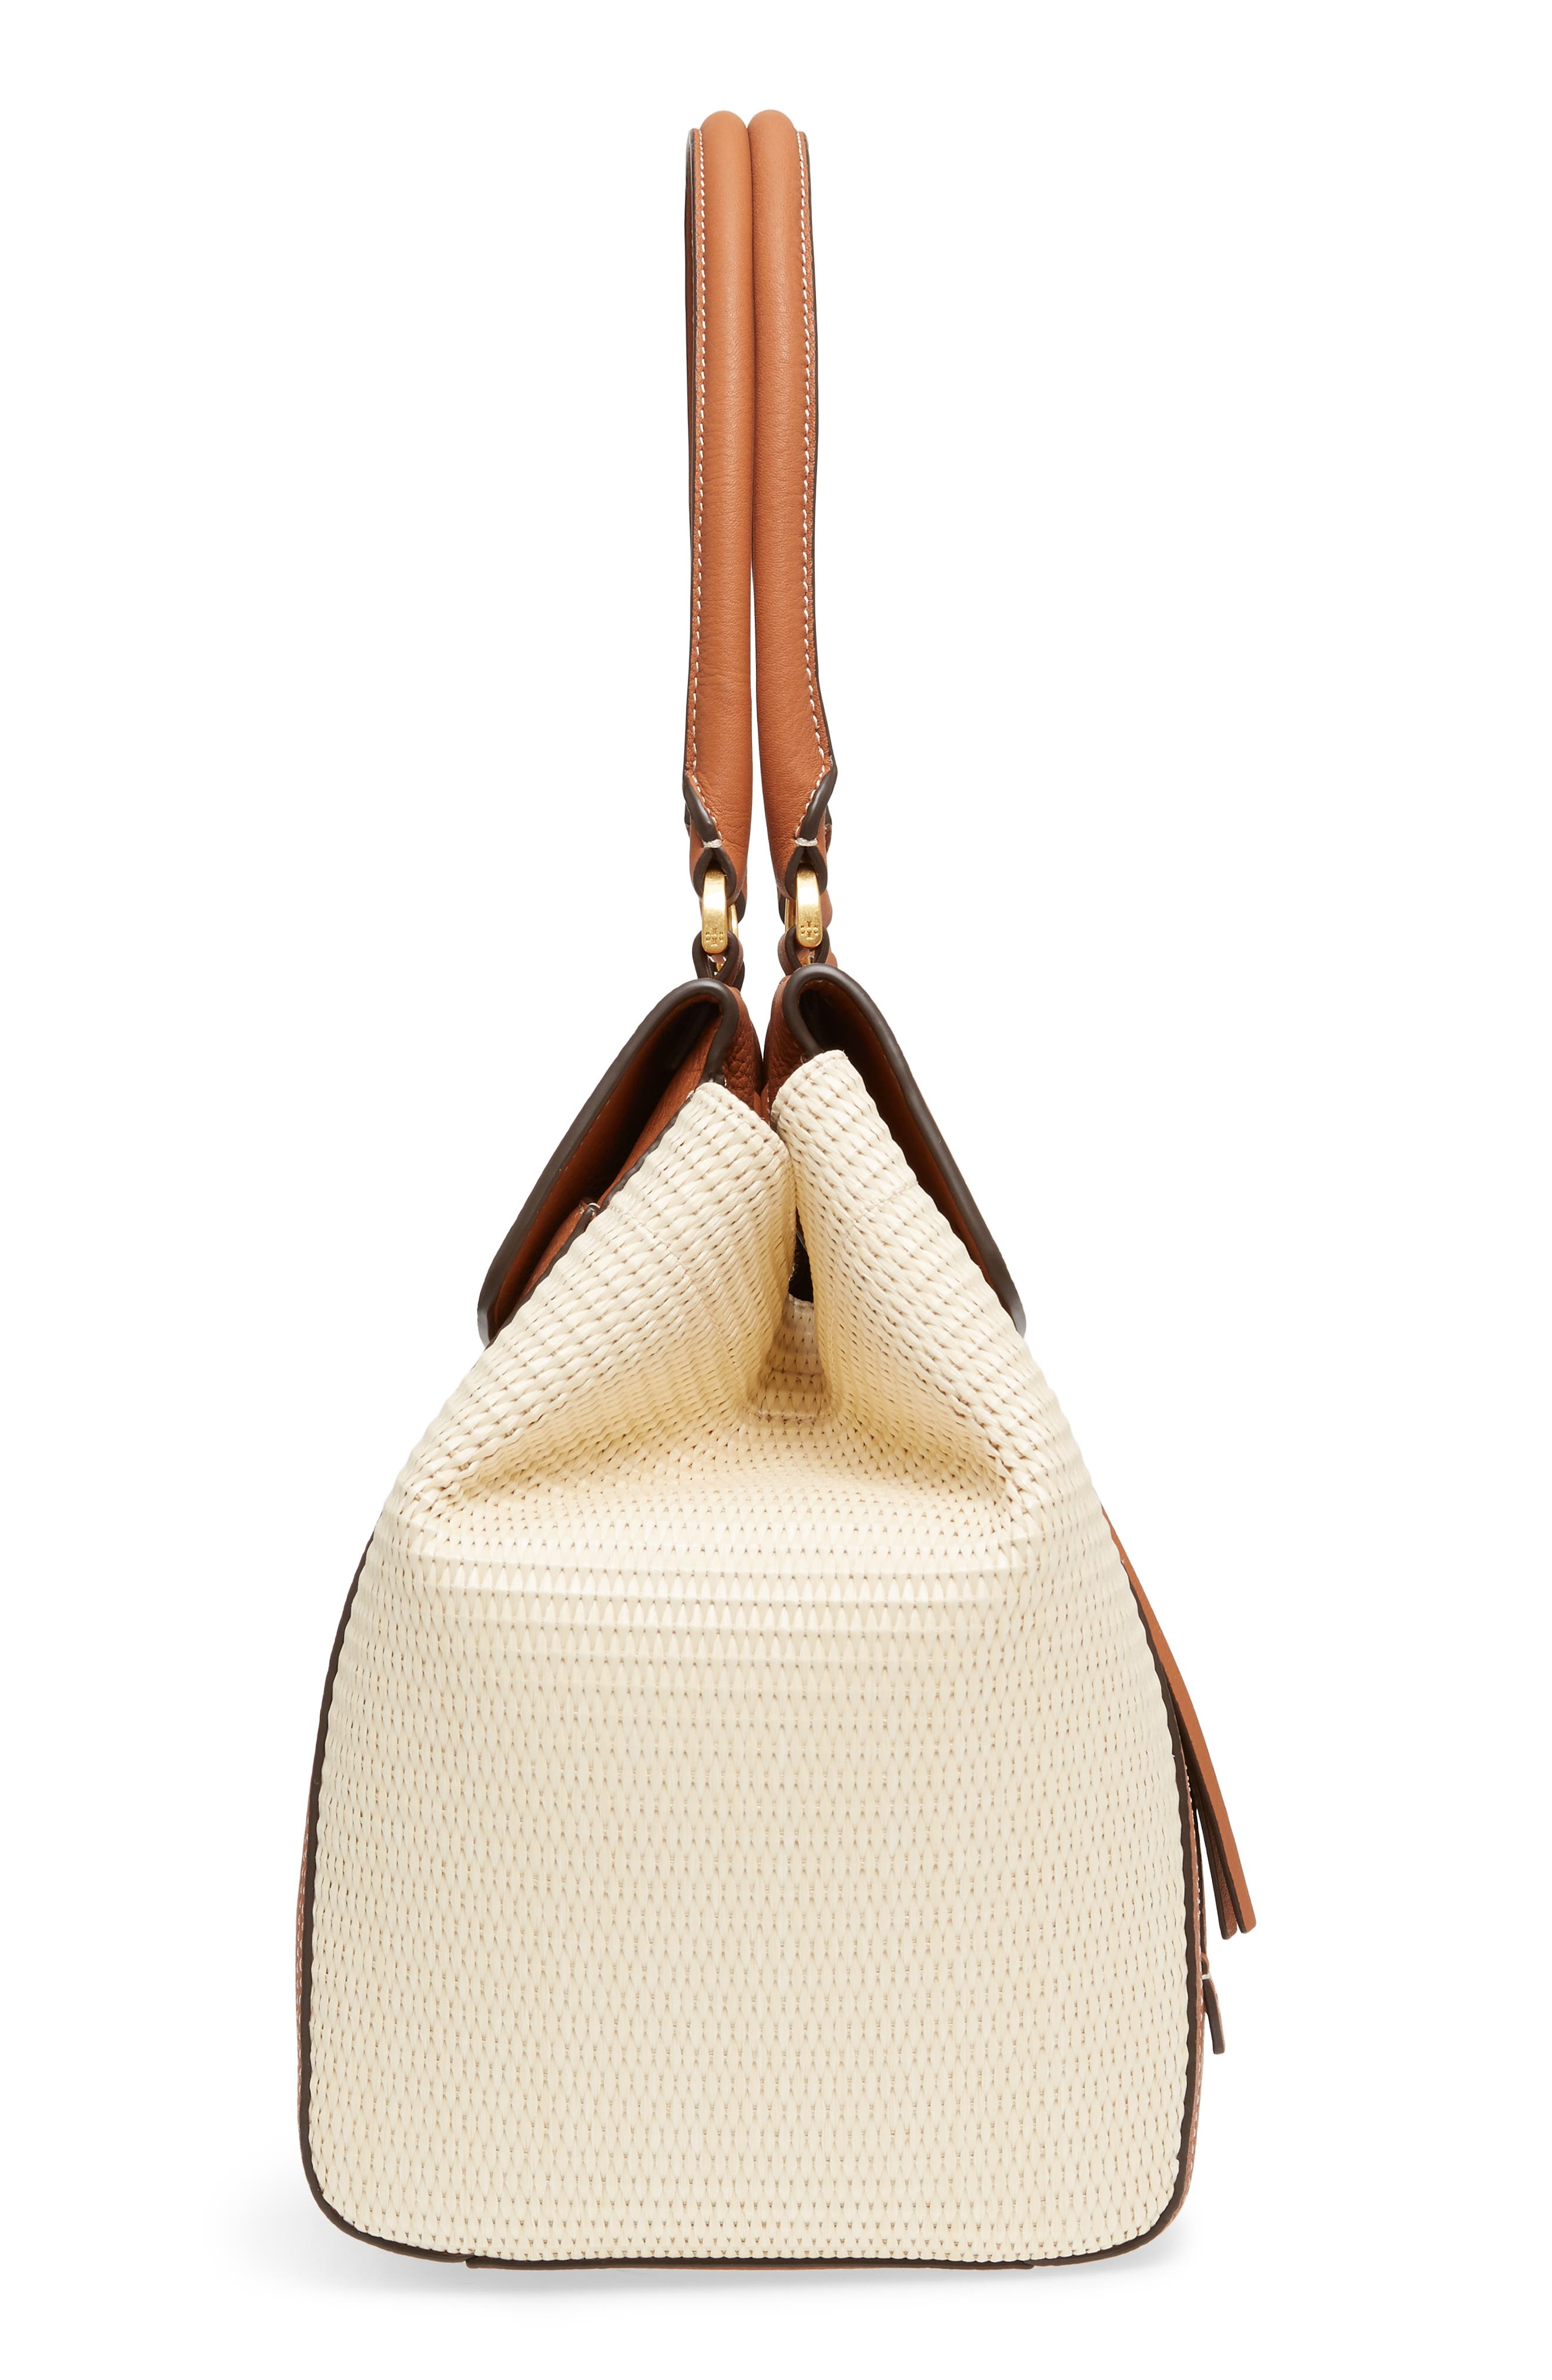 Half-Moon Straw & Leather Tote,                             Alternate thumbnail 5, color,                             Natural / Classic Tan